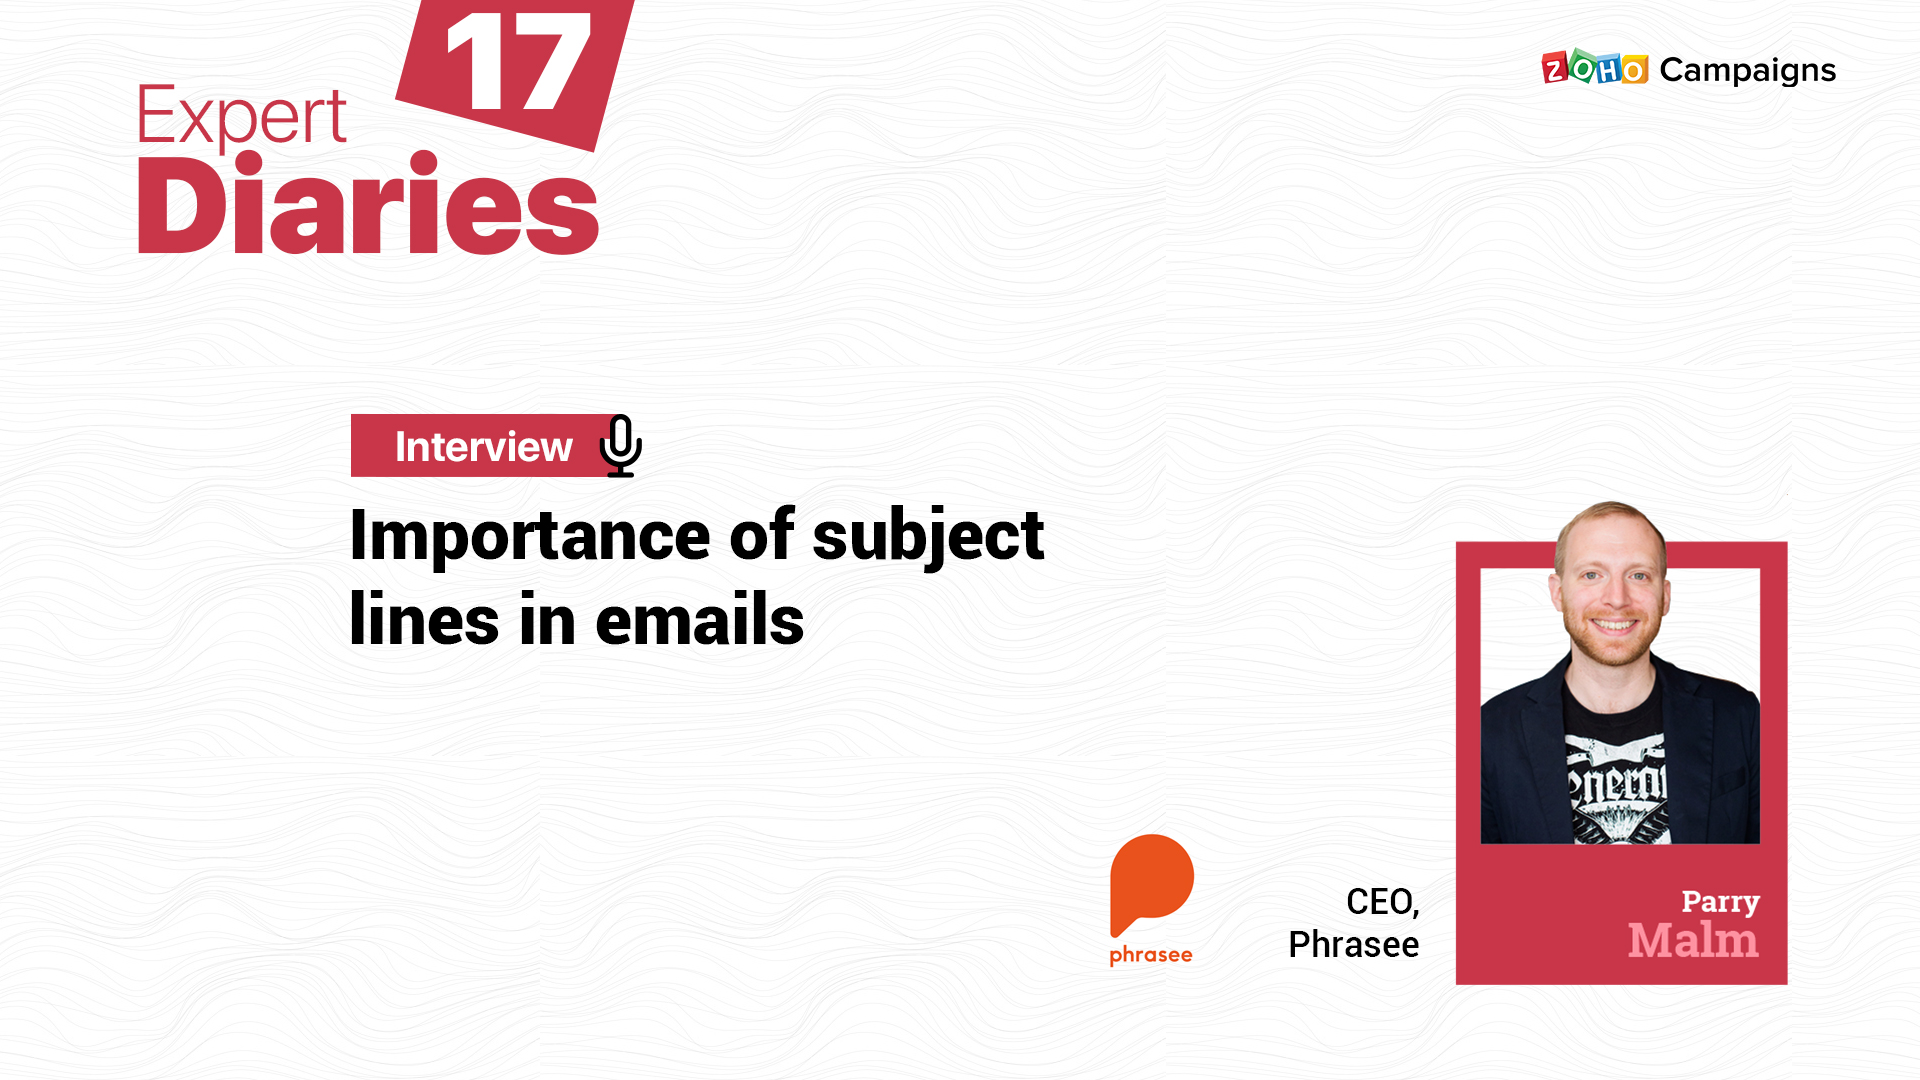 Importance of subject lines in emails